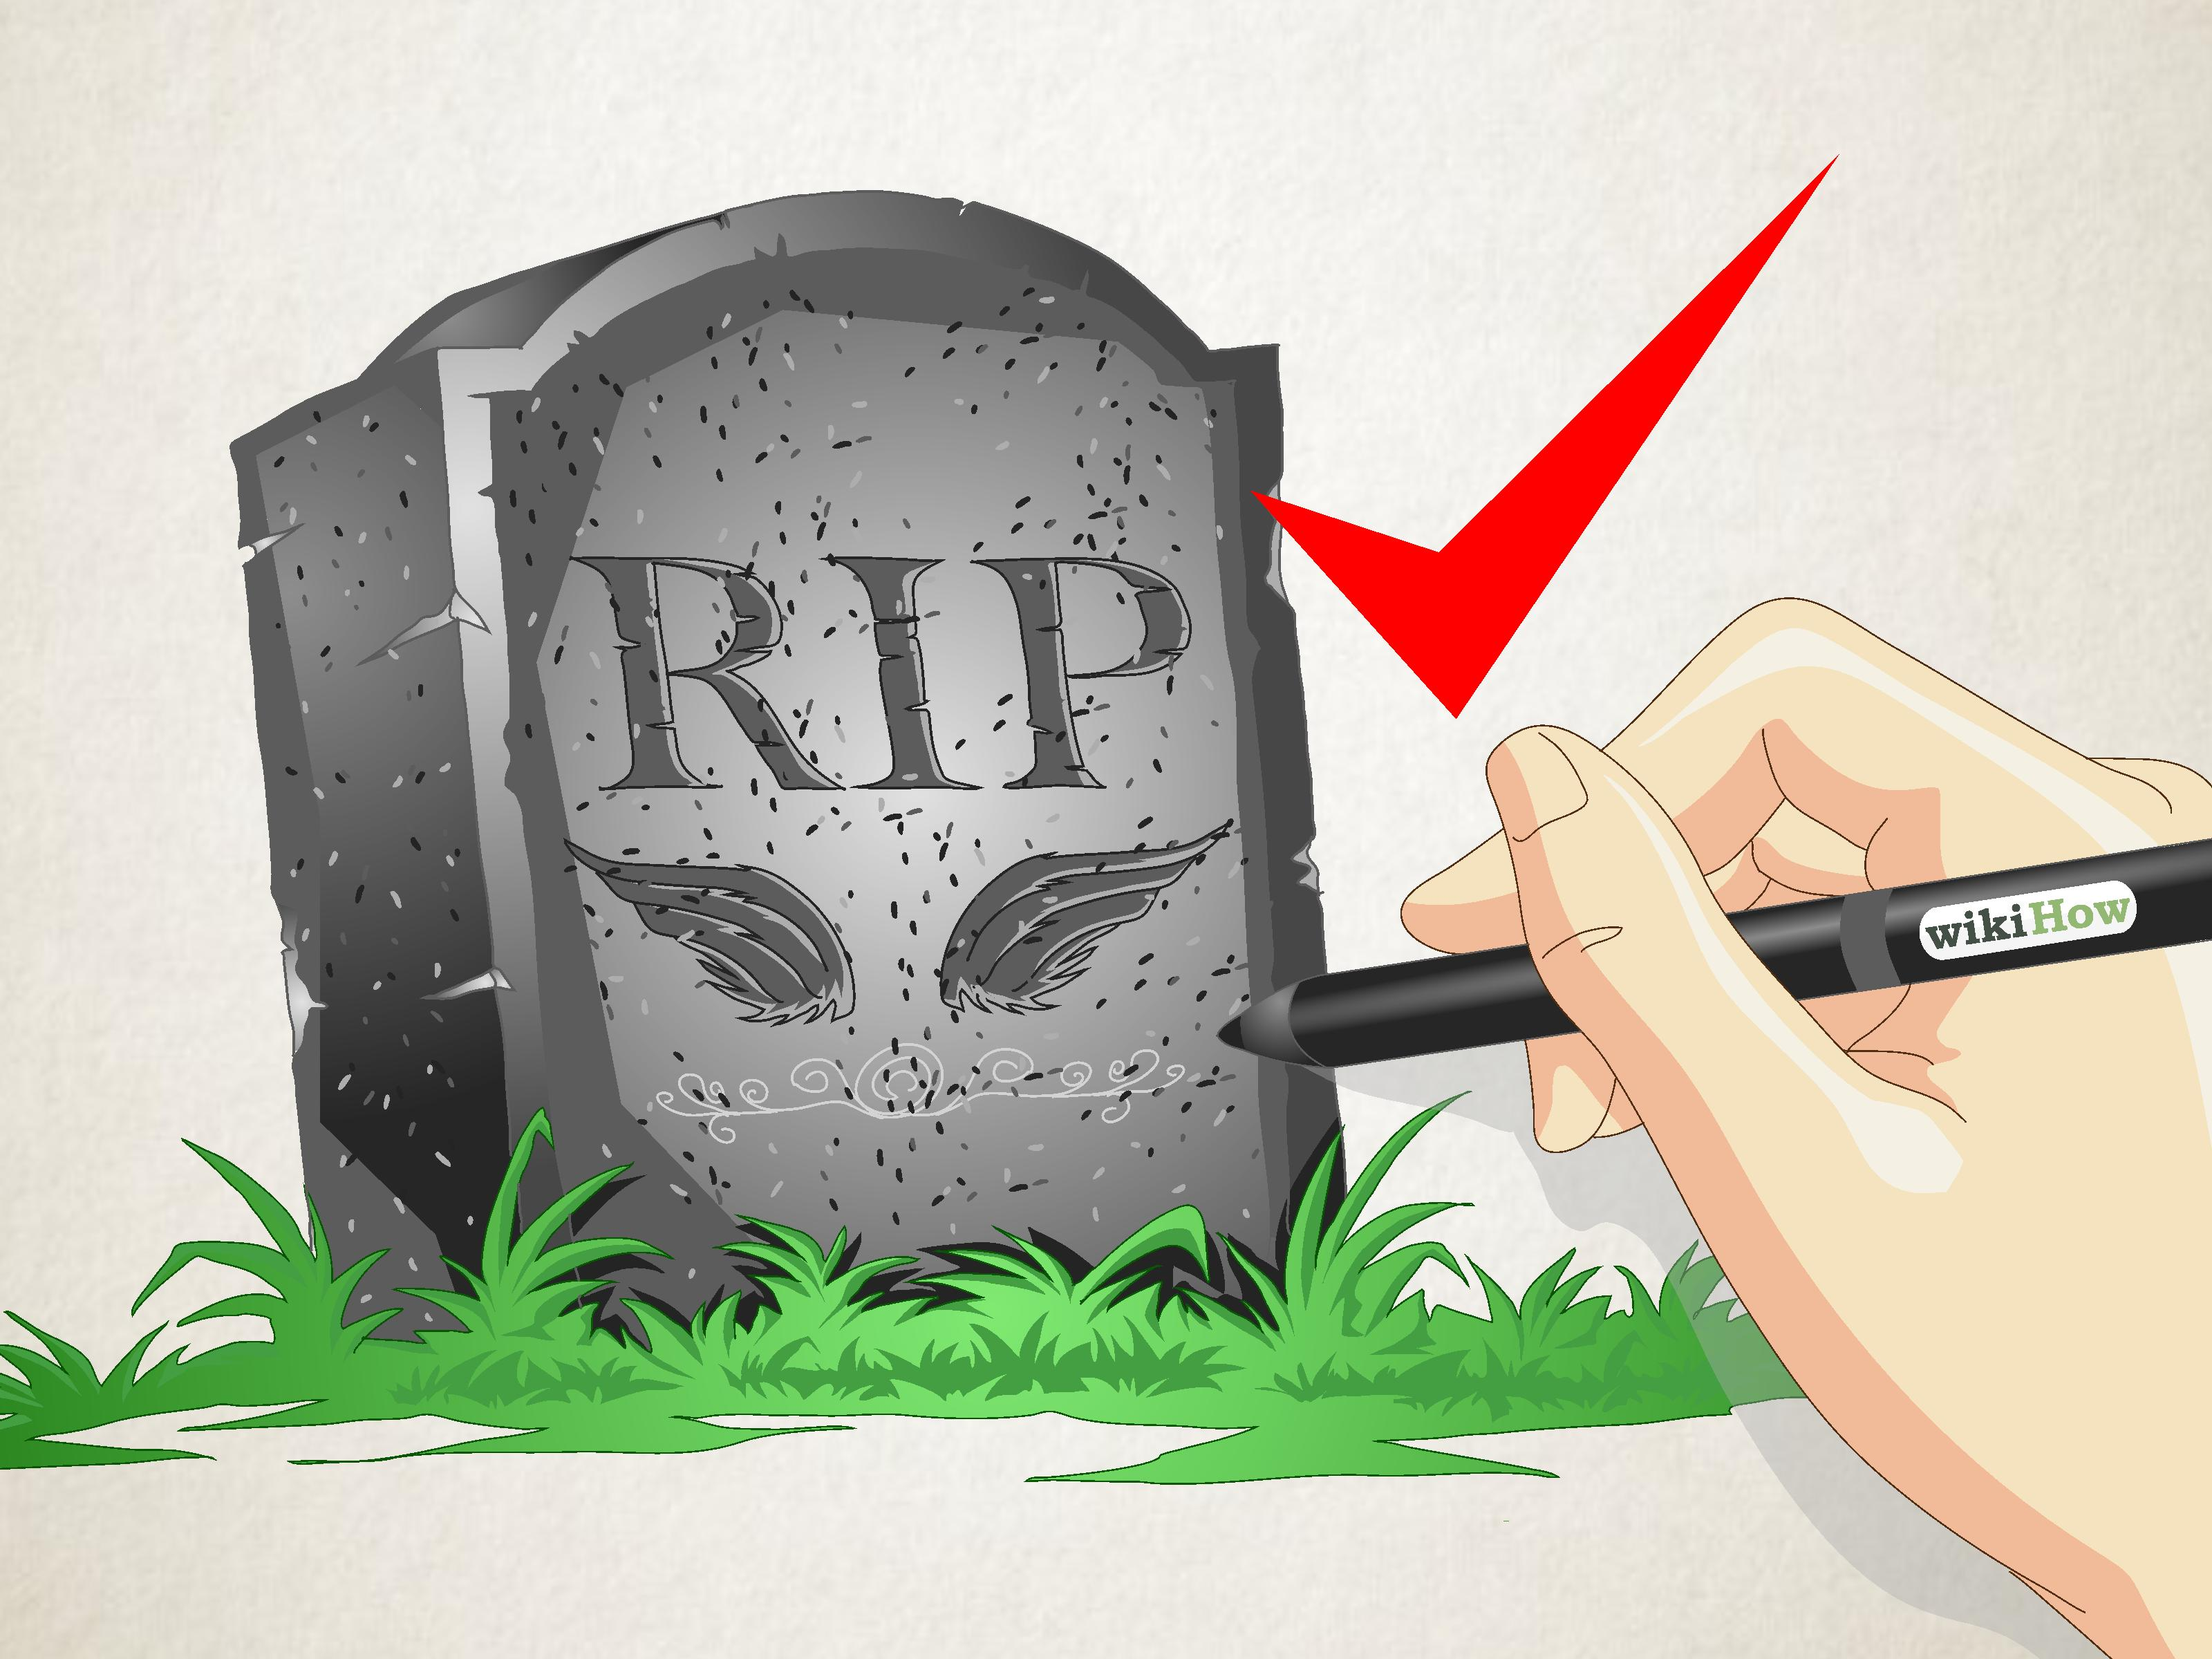 Drawn tombstone horror Gravestone: Pictures) 11 wikiHow Draw